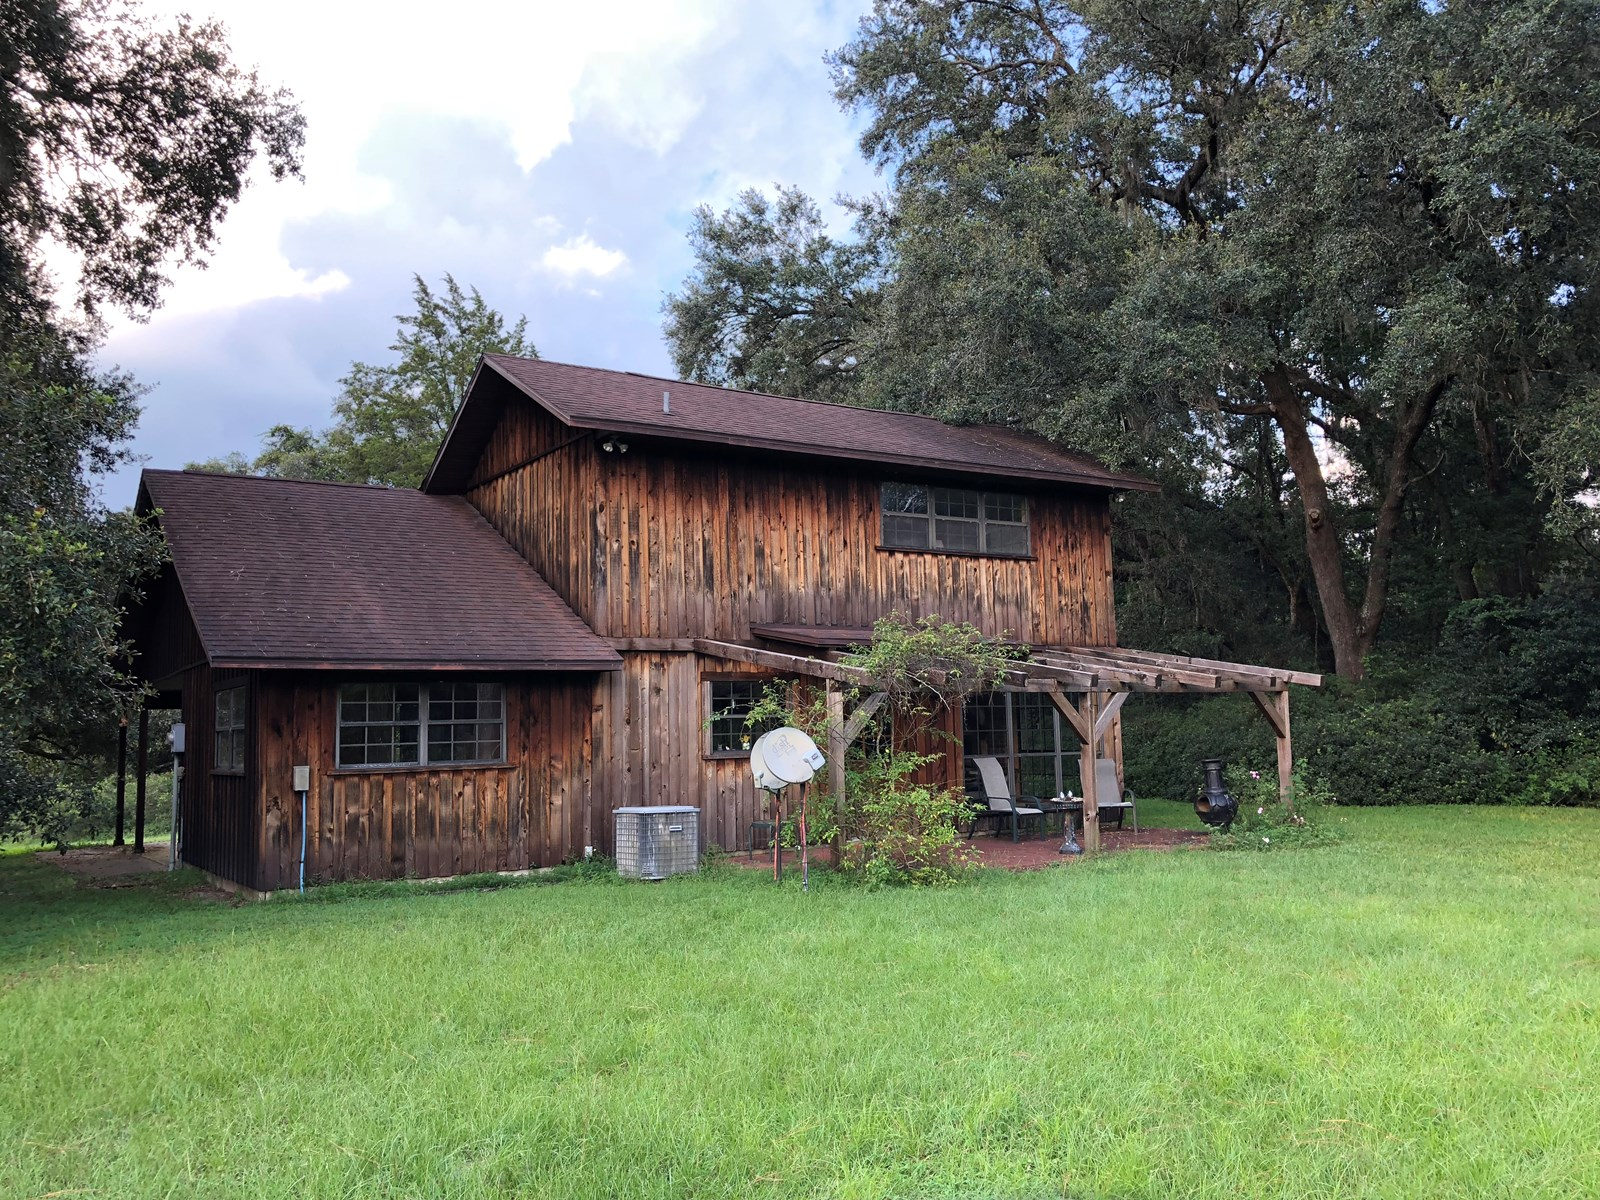 FOR SALE - COUNTRY HOME WITH BARNS -Trenton, Levy County, FL